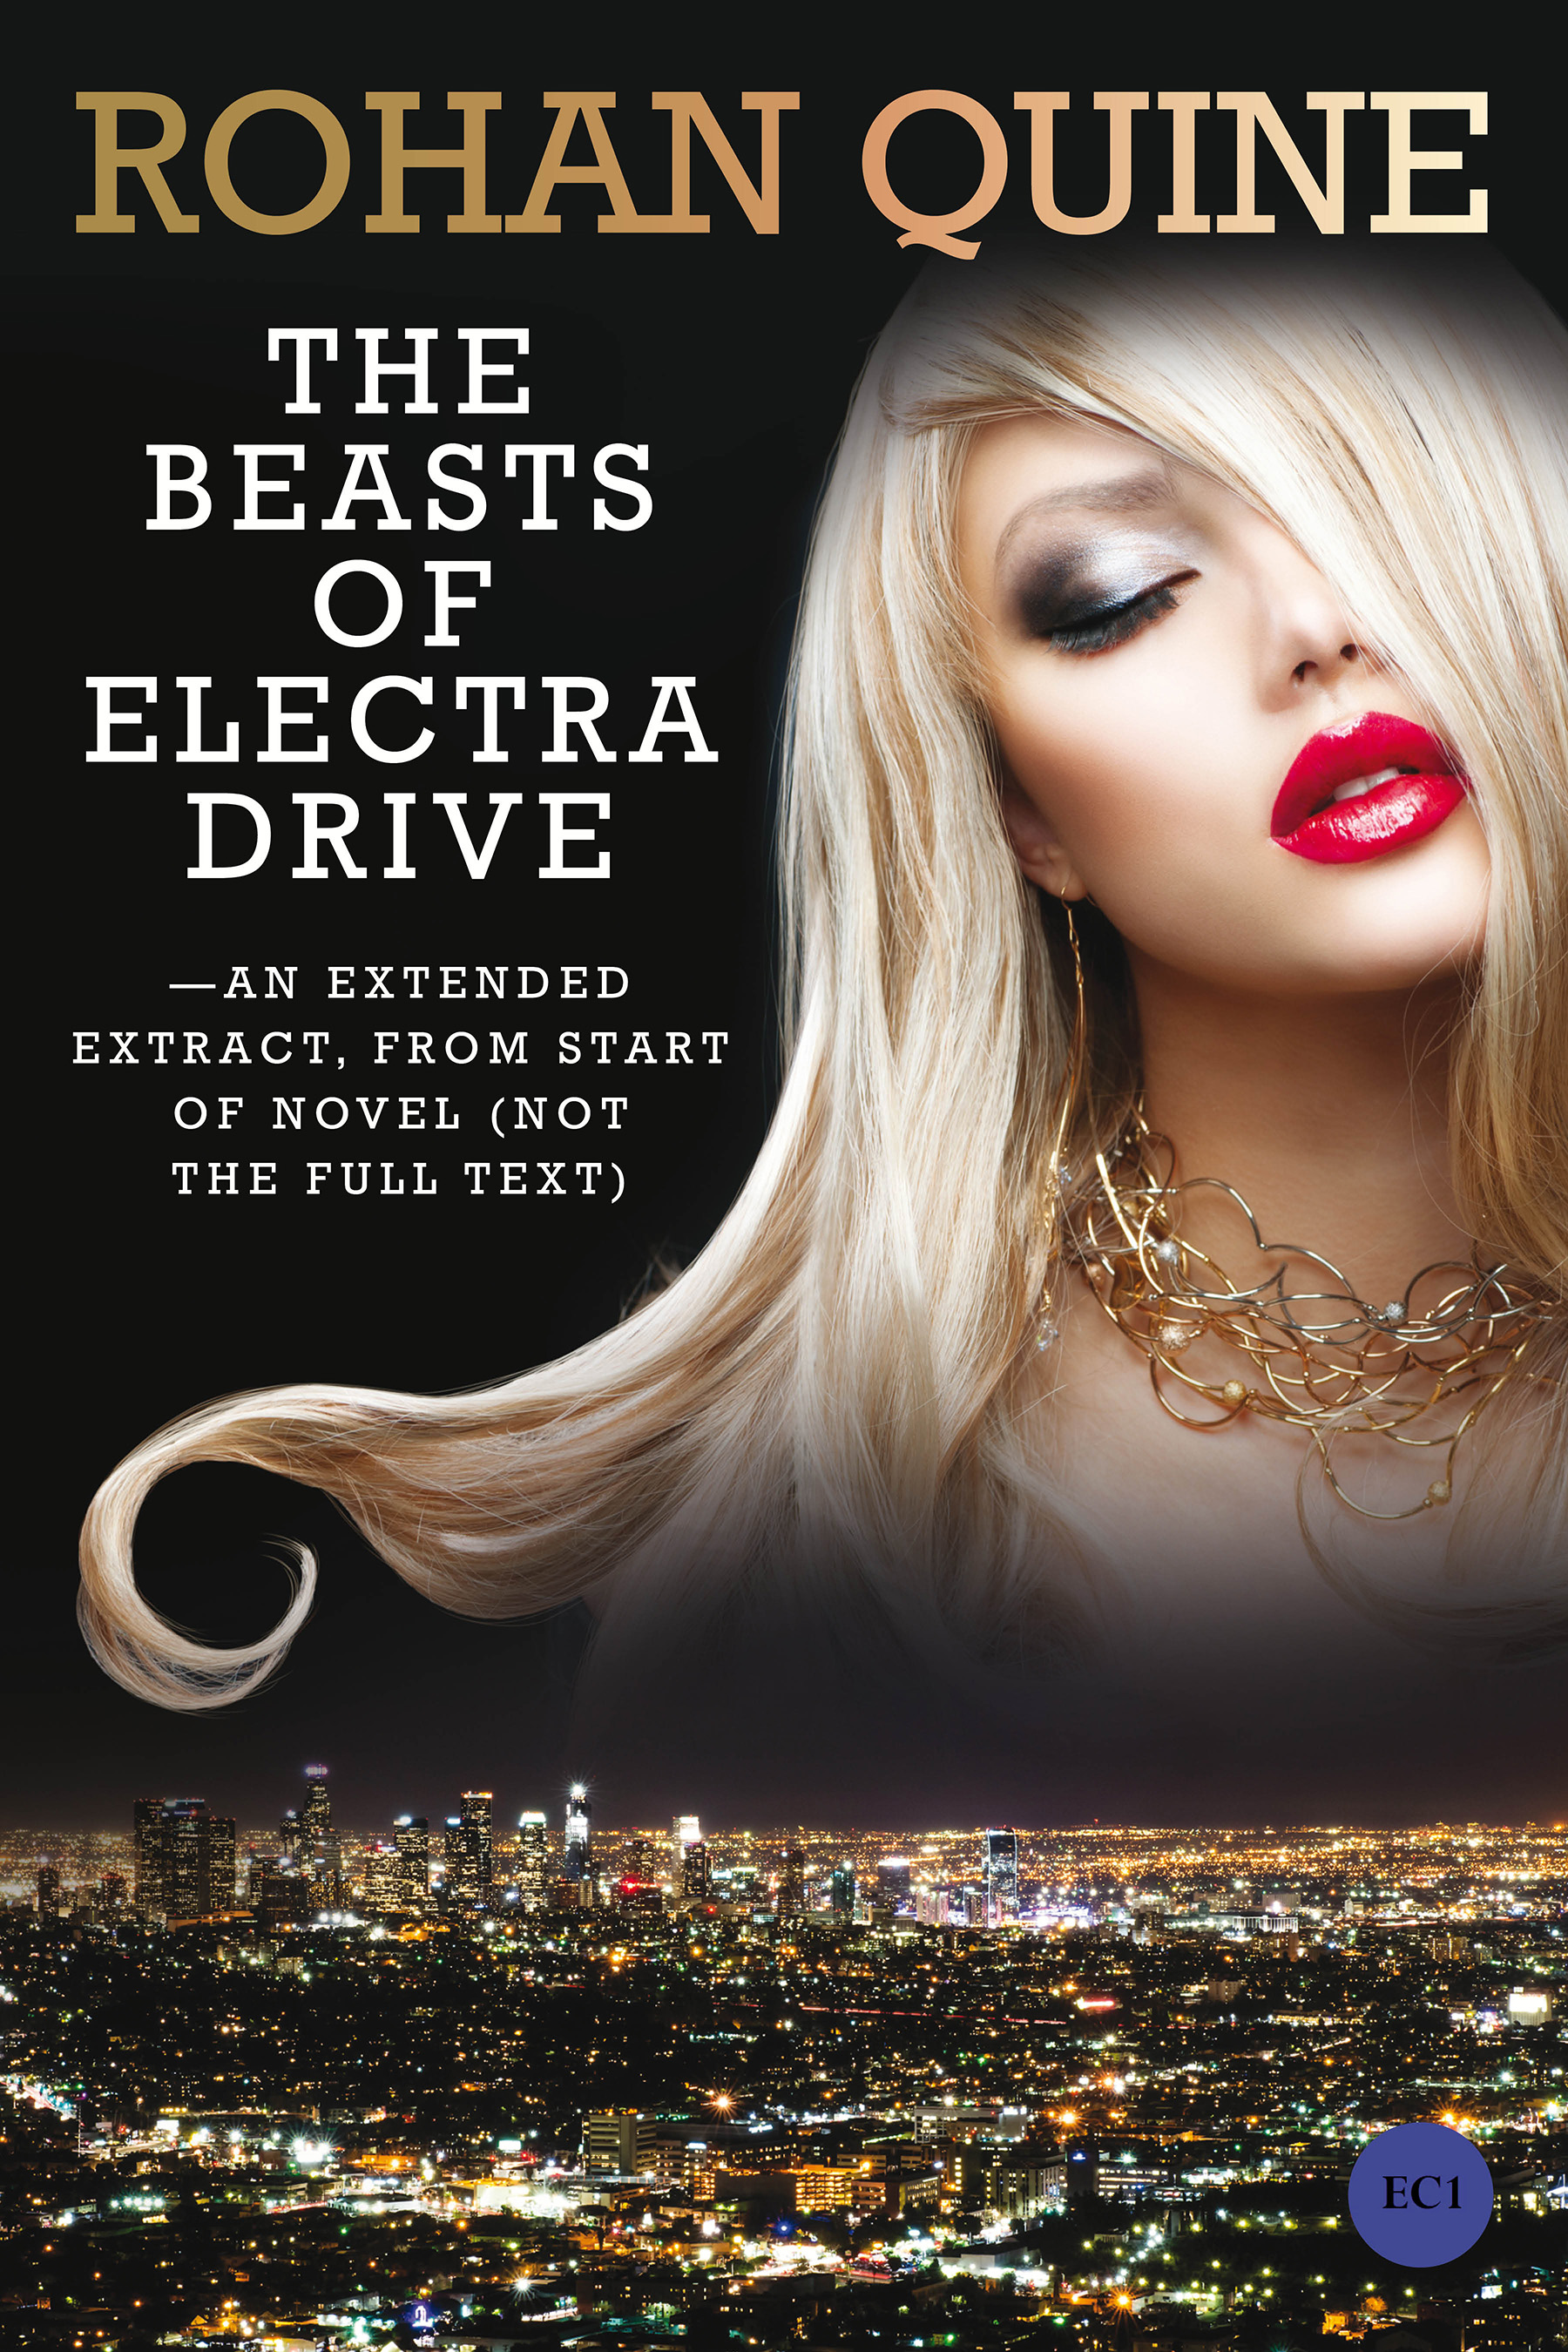 THE BEASTS OF ELECTRA DRIVE (novel) by Rohan Quine EXTENDED EXTRACT - ebook cover